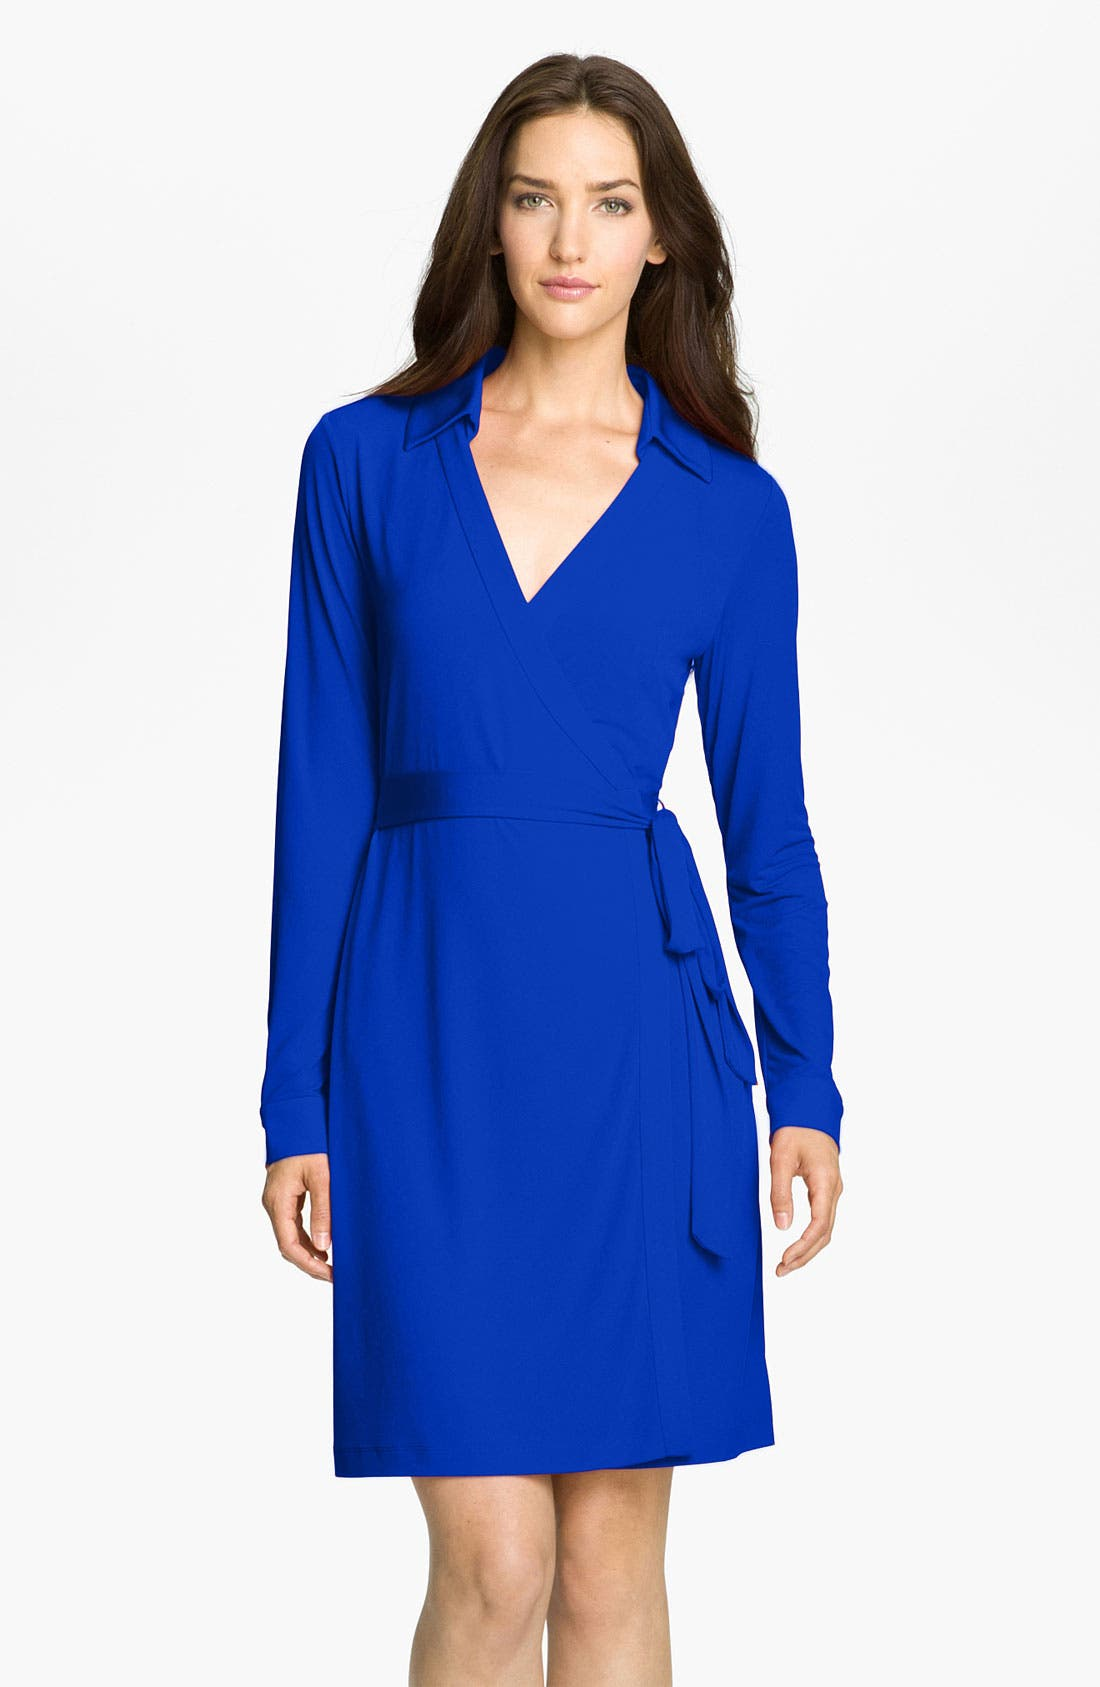 Alternate Image 1 Selected - Calvin Klein Collared Jersey Wrap Dress (Petite)